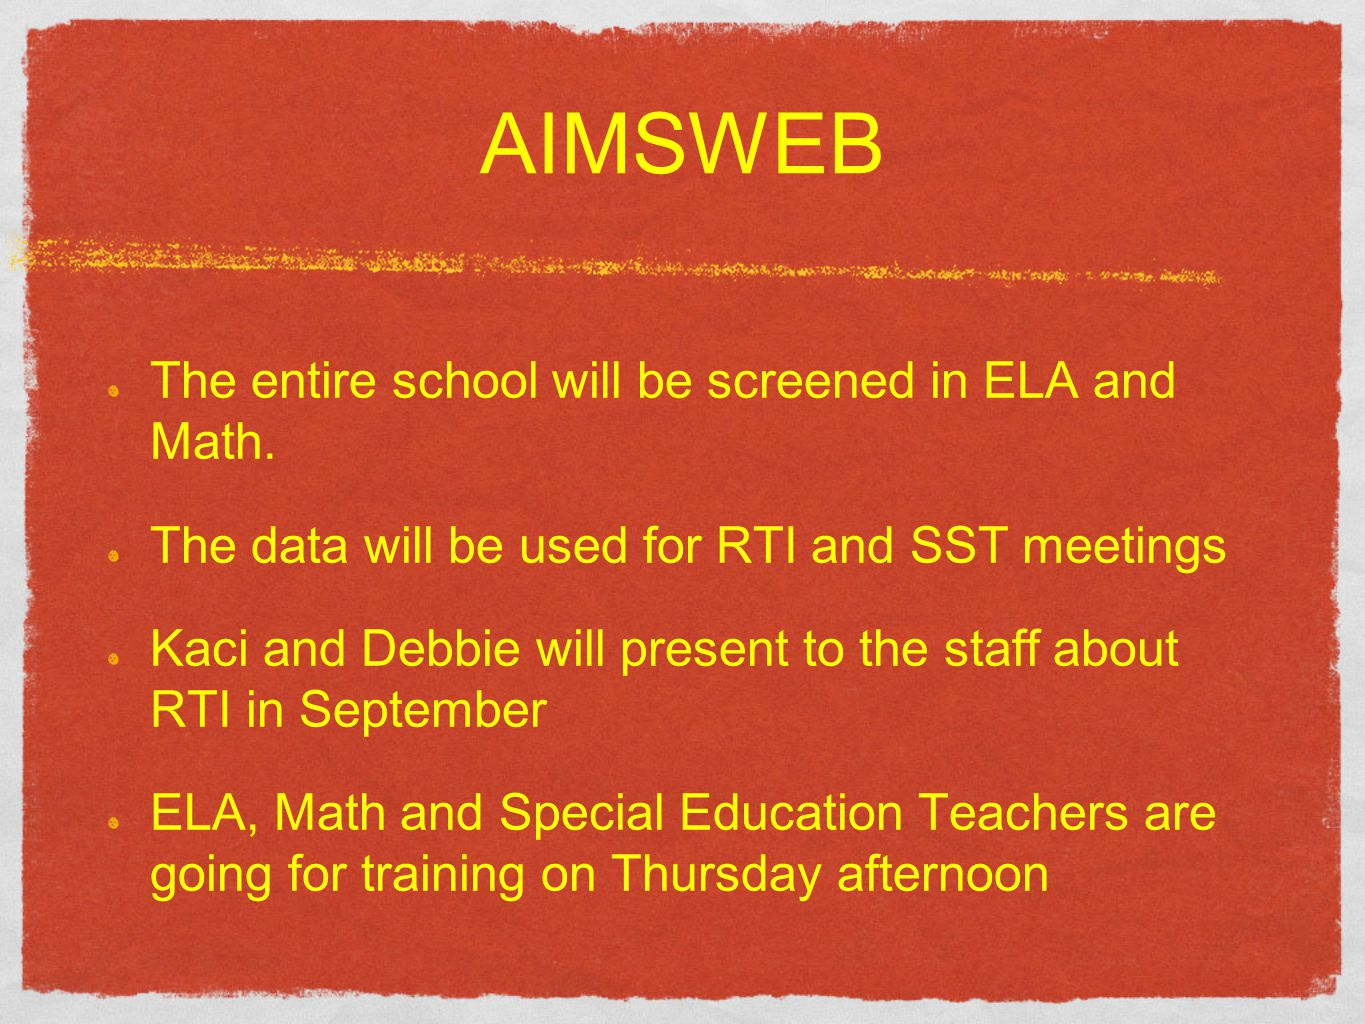 AIMSWEB The entire school will be screened in ELA and Math.